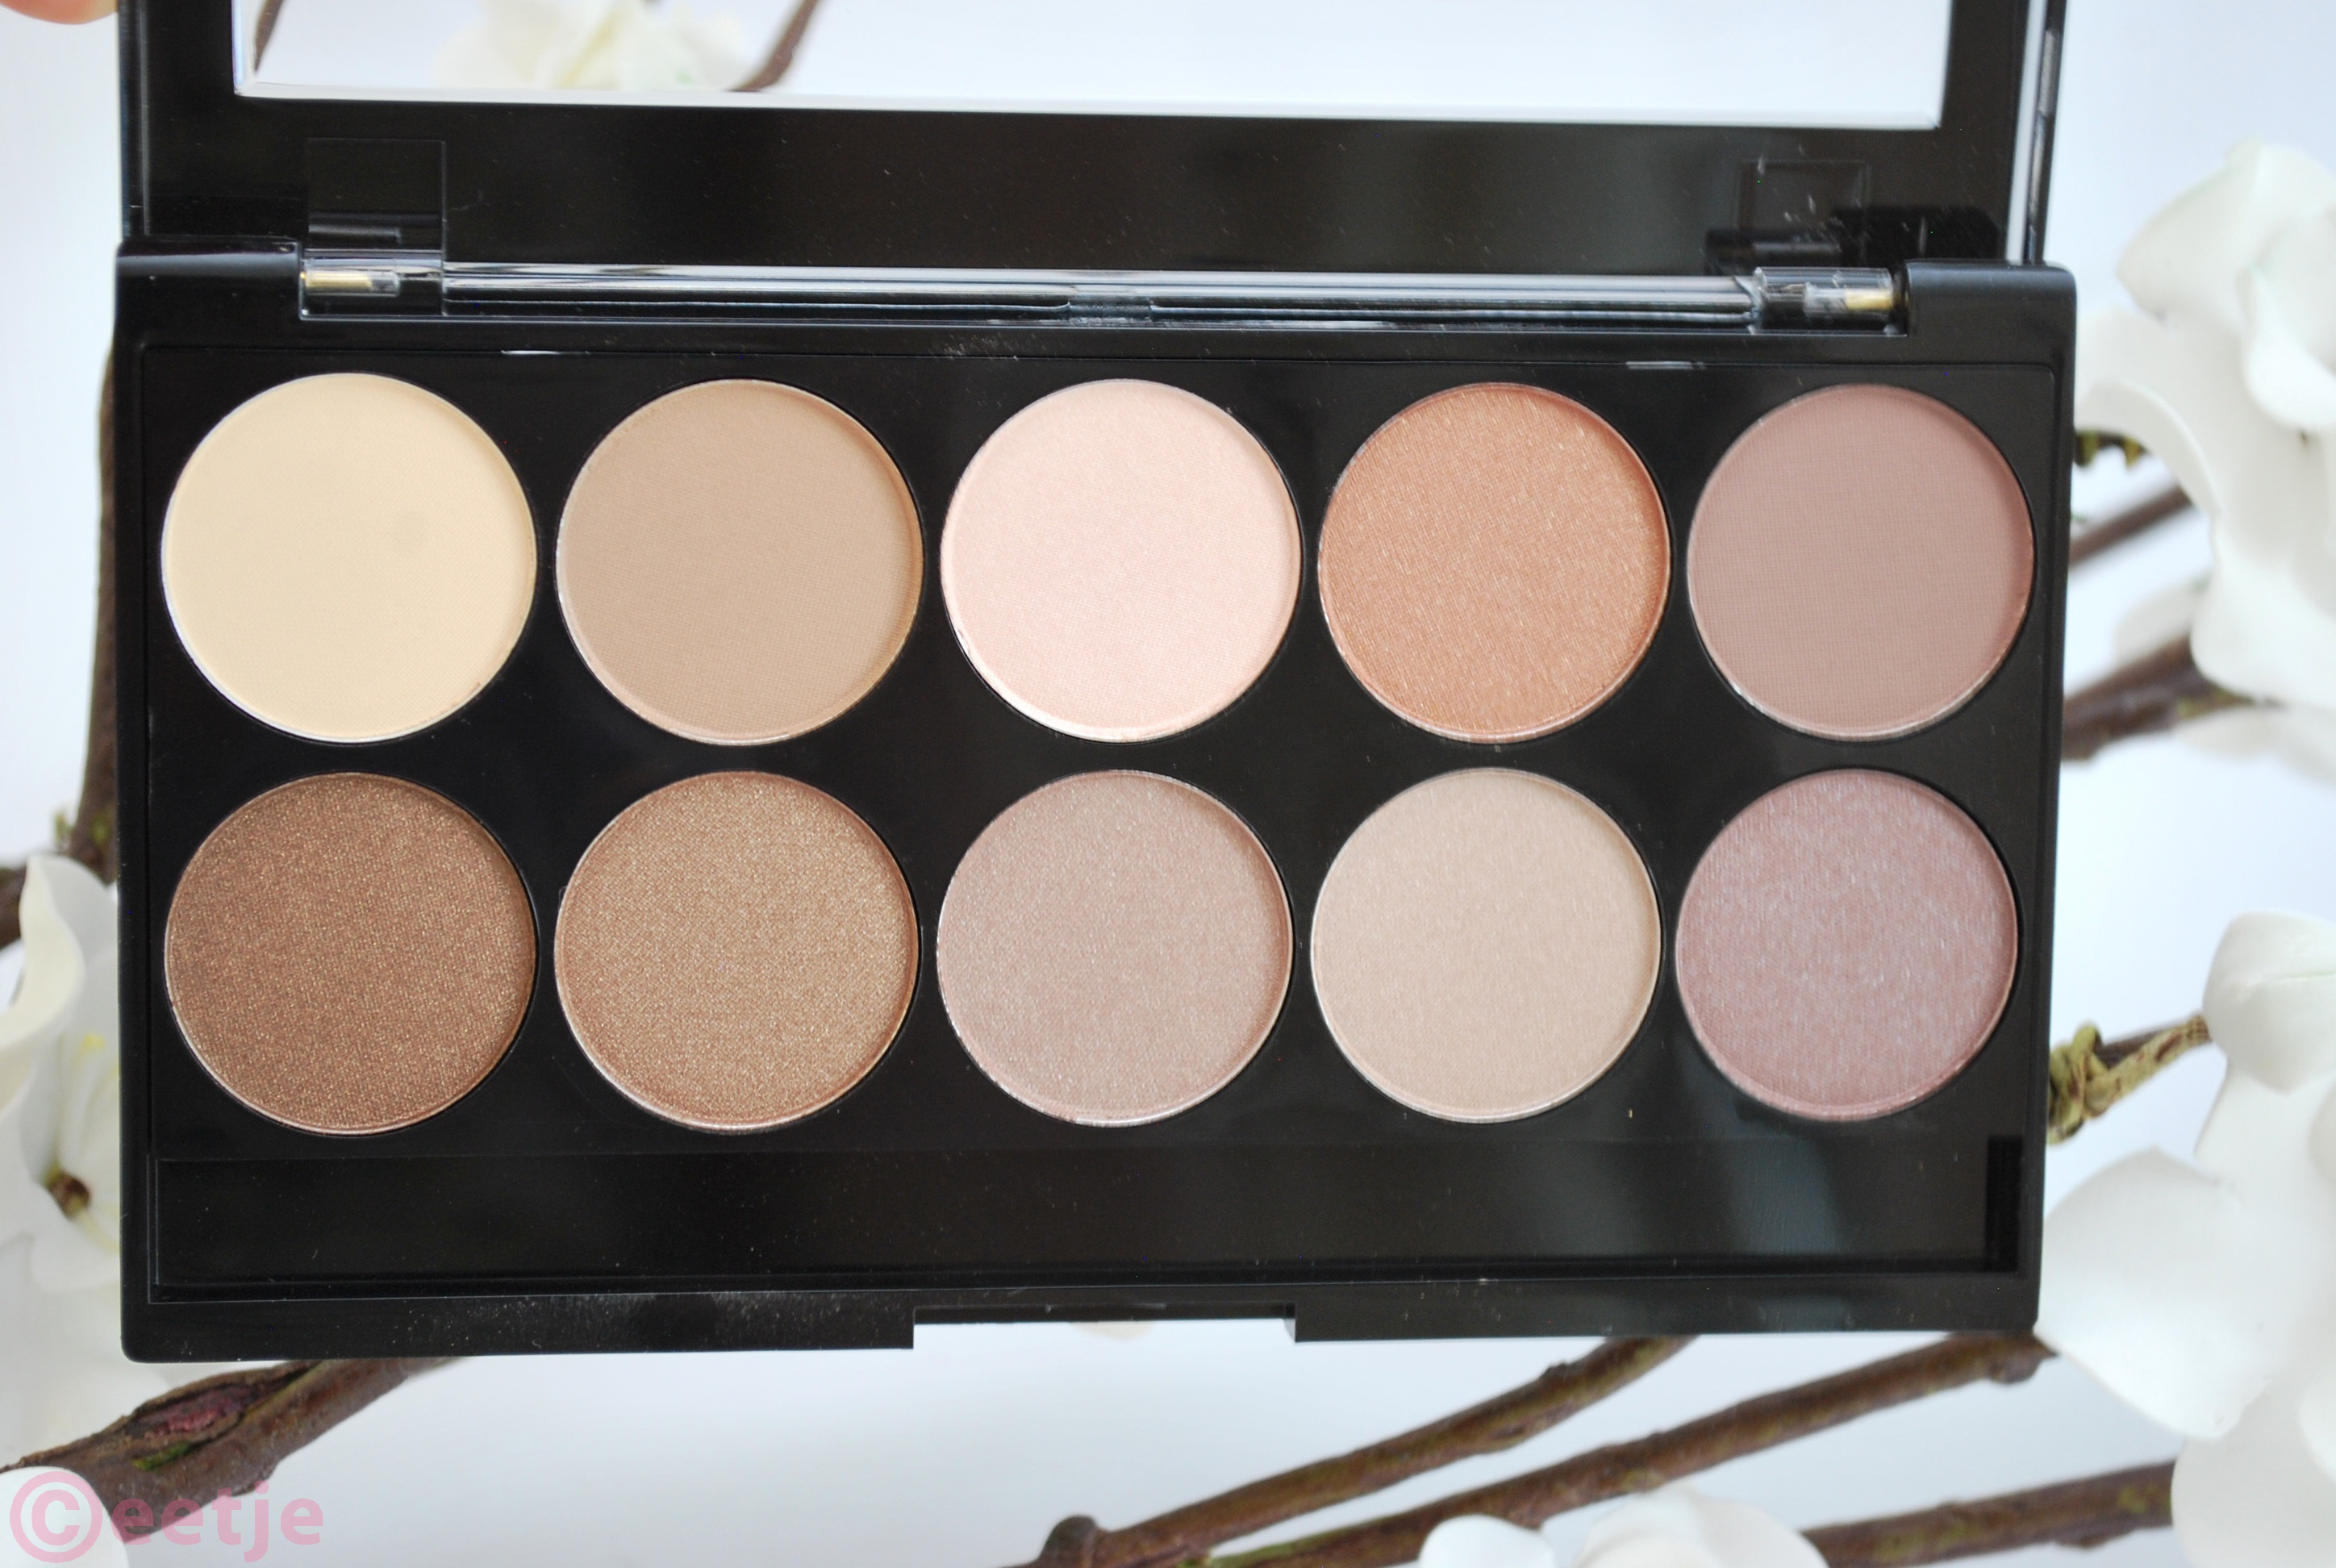 W7 10 out of 10 eyeshadow palette browns